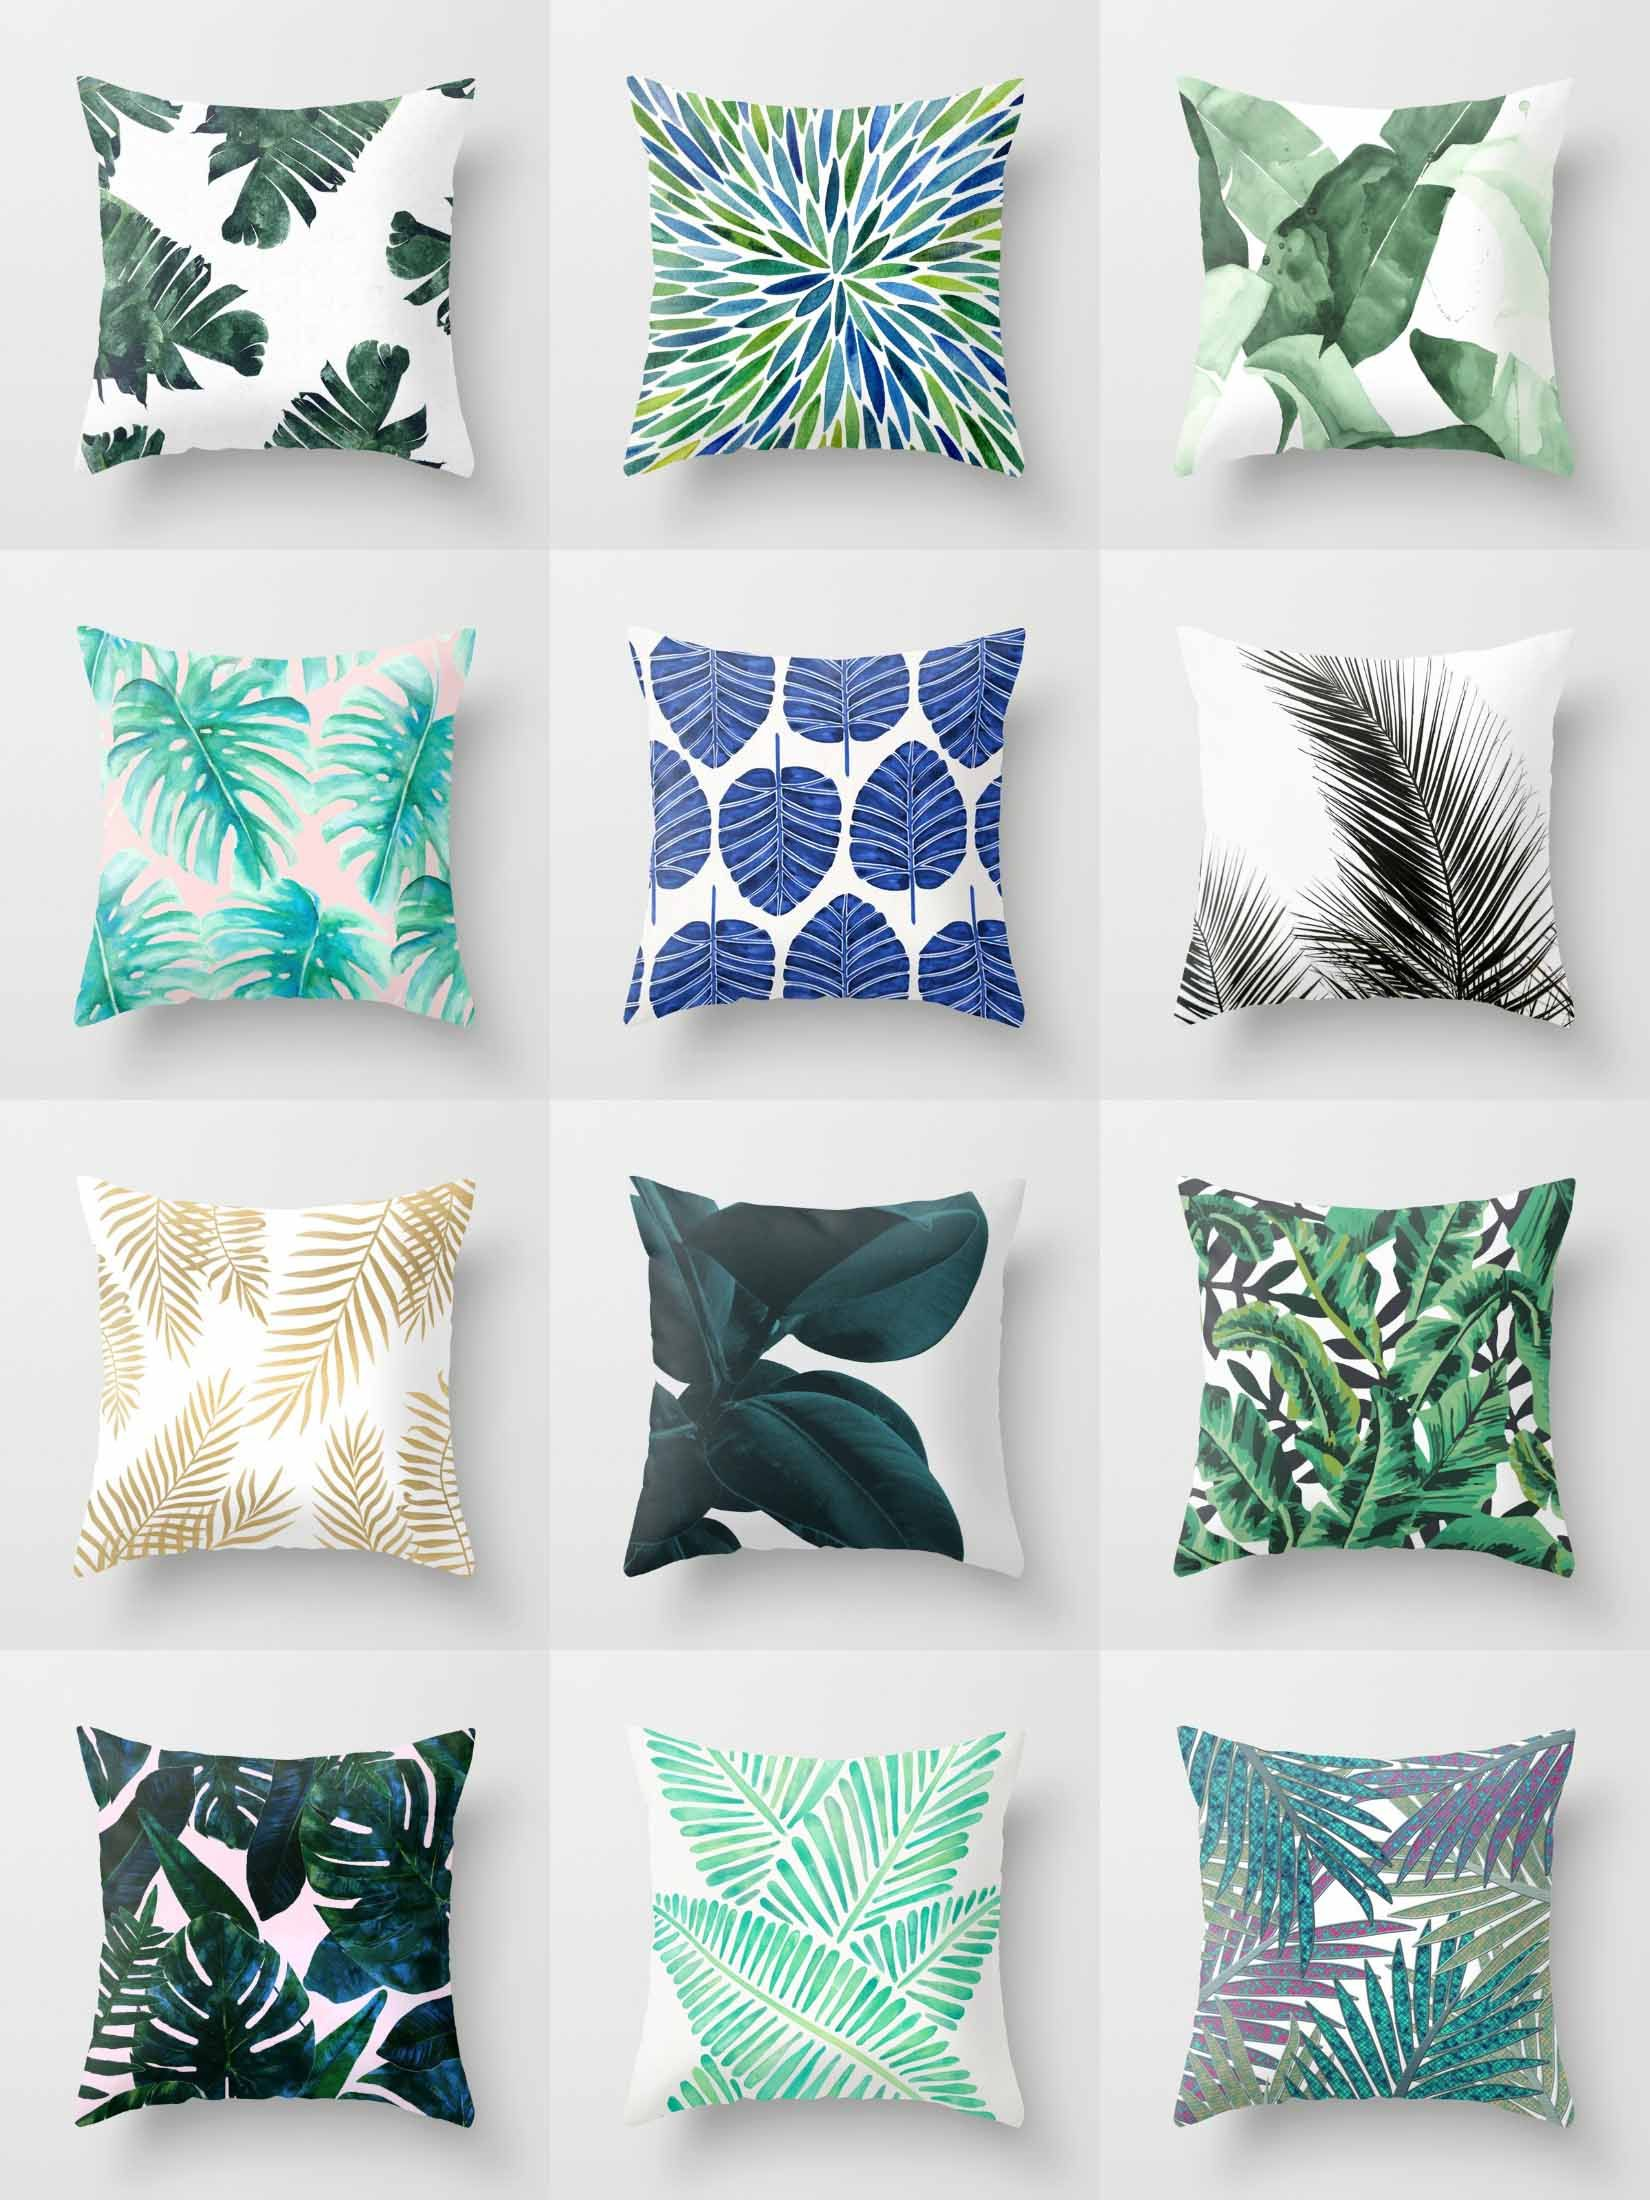 Society6 Leafy Throw Pillows - Society6 is home to ...